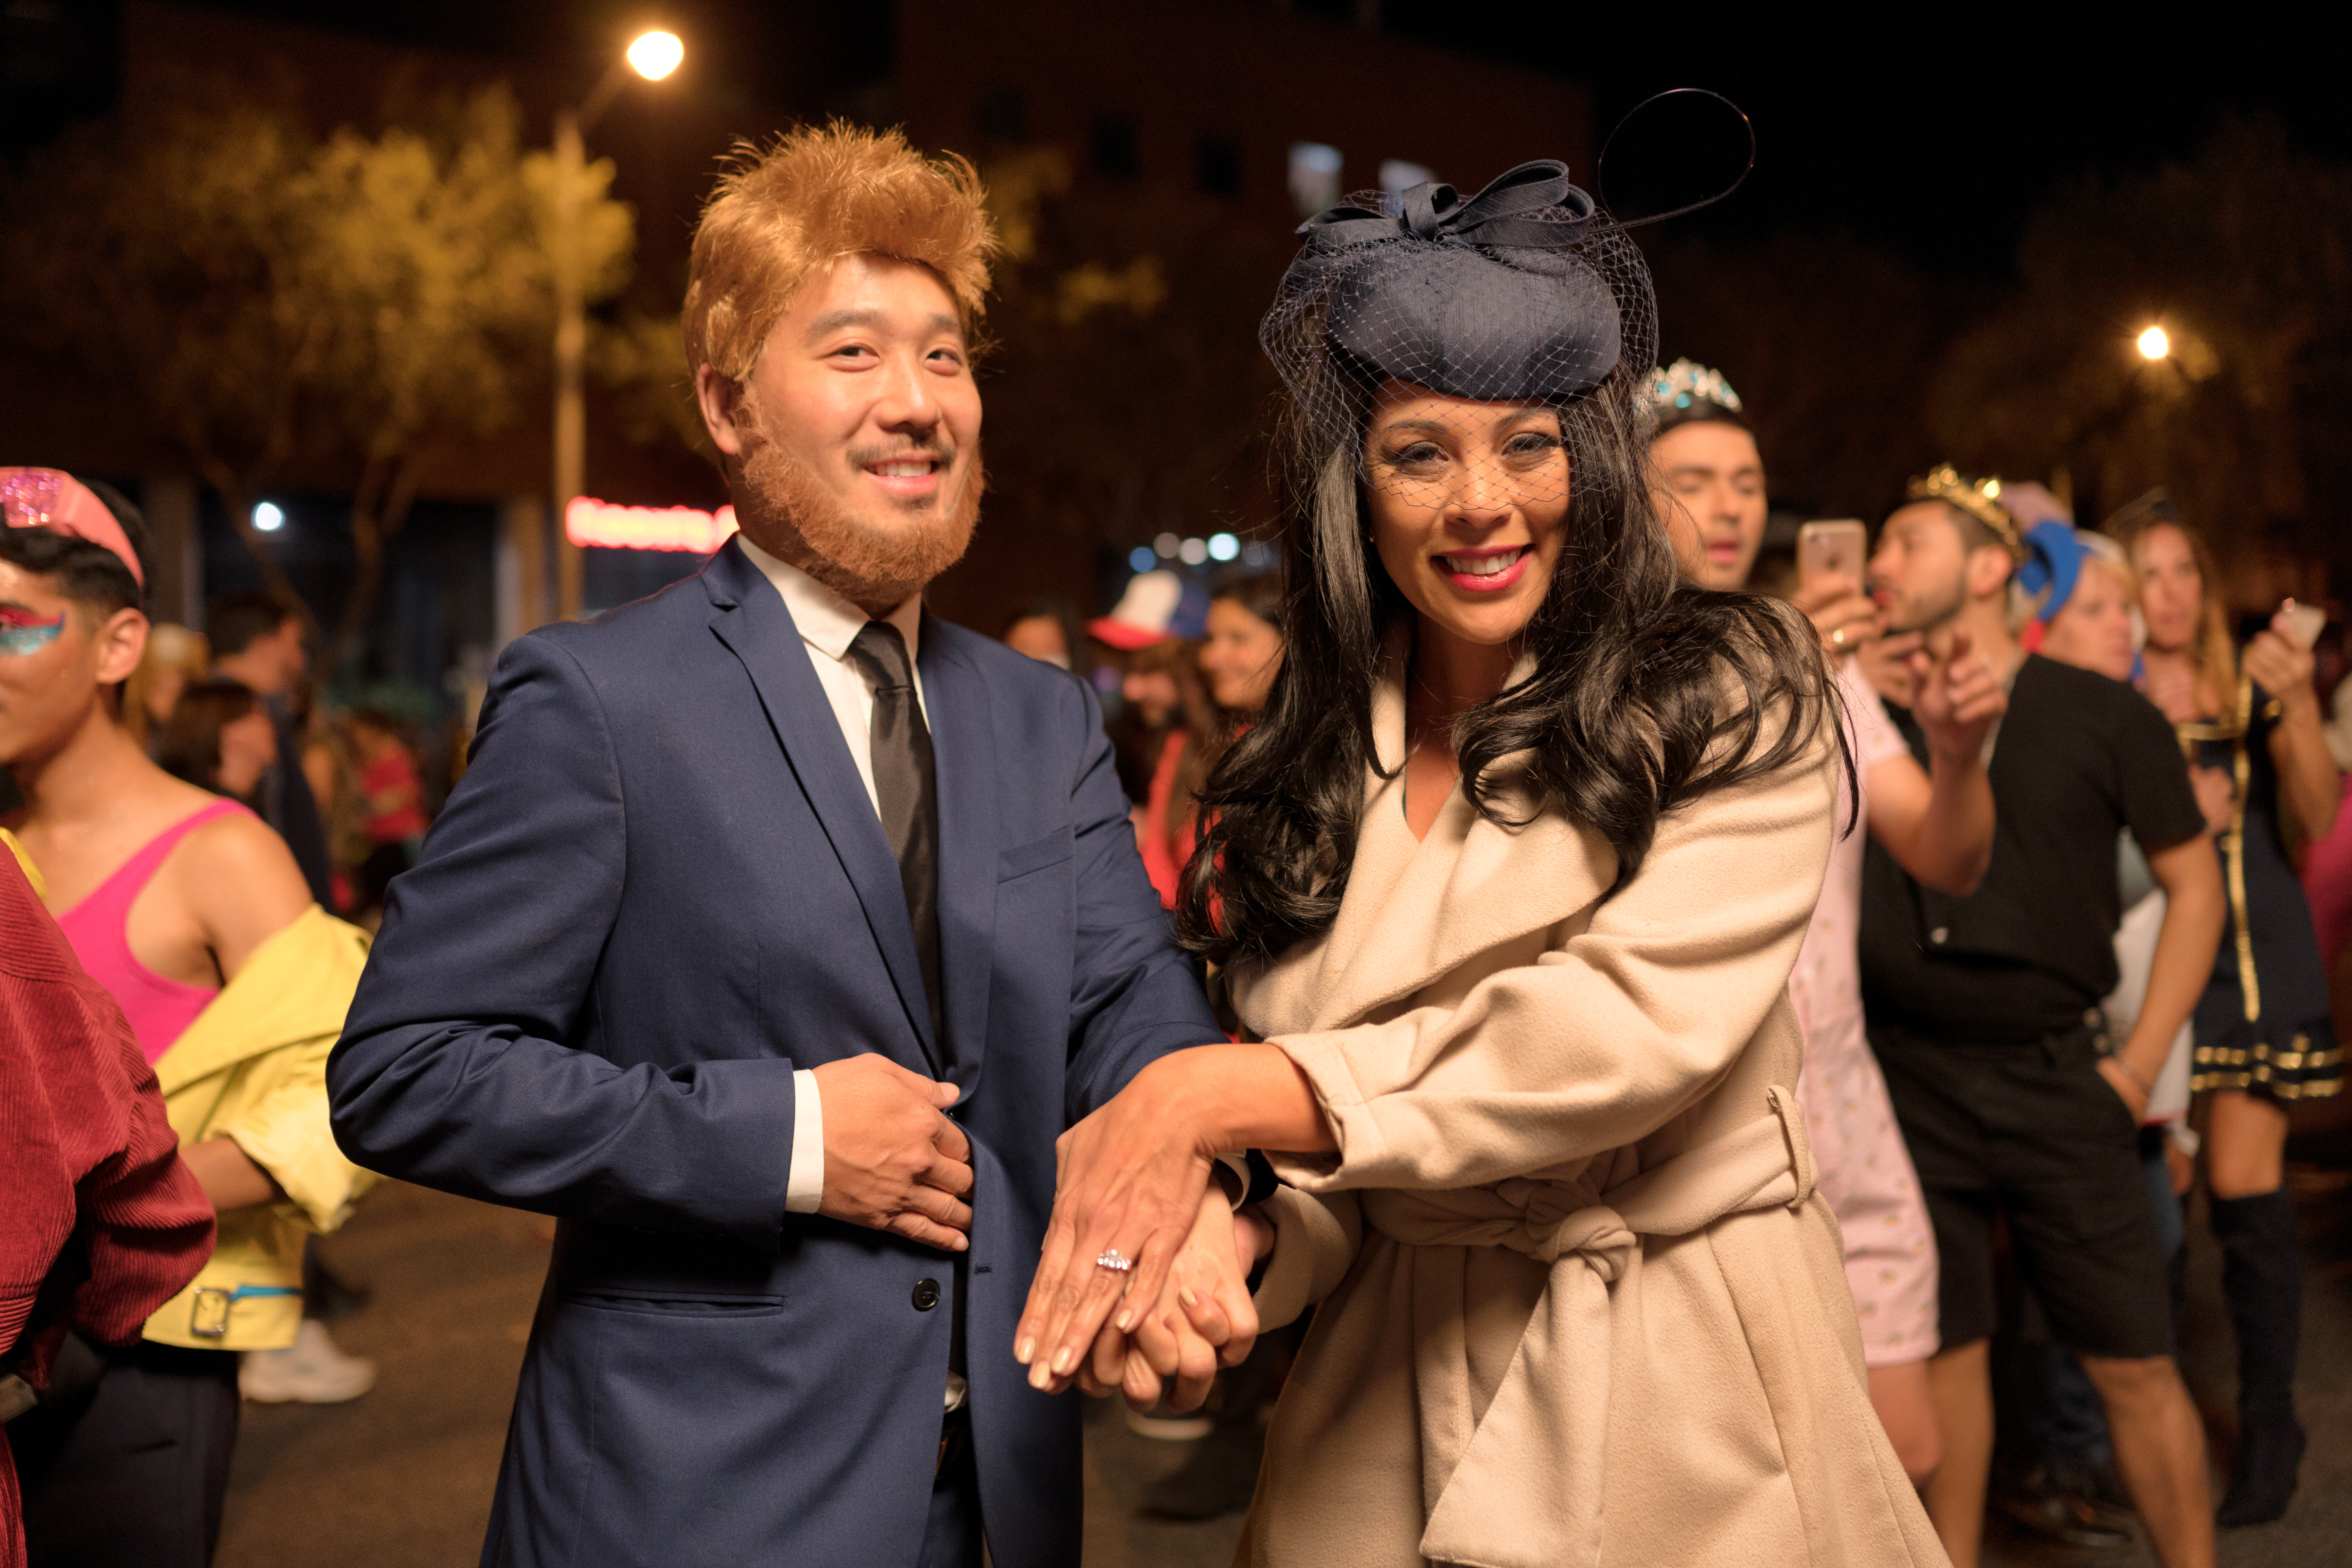 How The West Hollywood Halloween Carnaval Became The Biggest Costume Party In The World